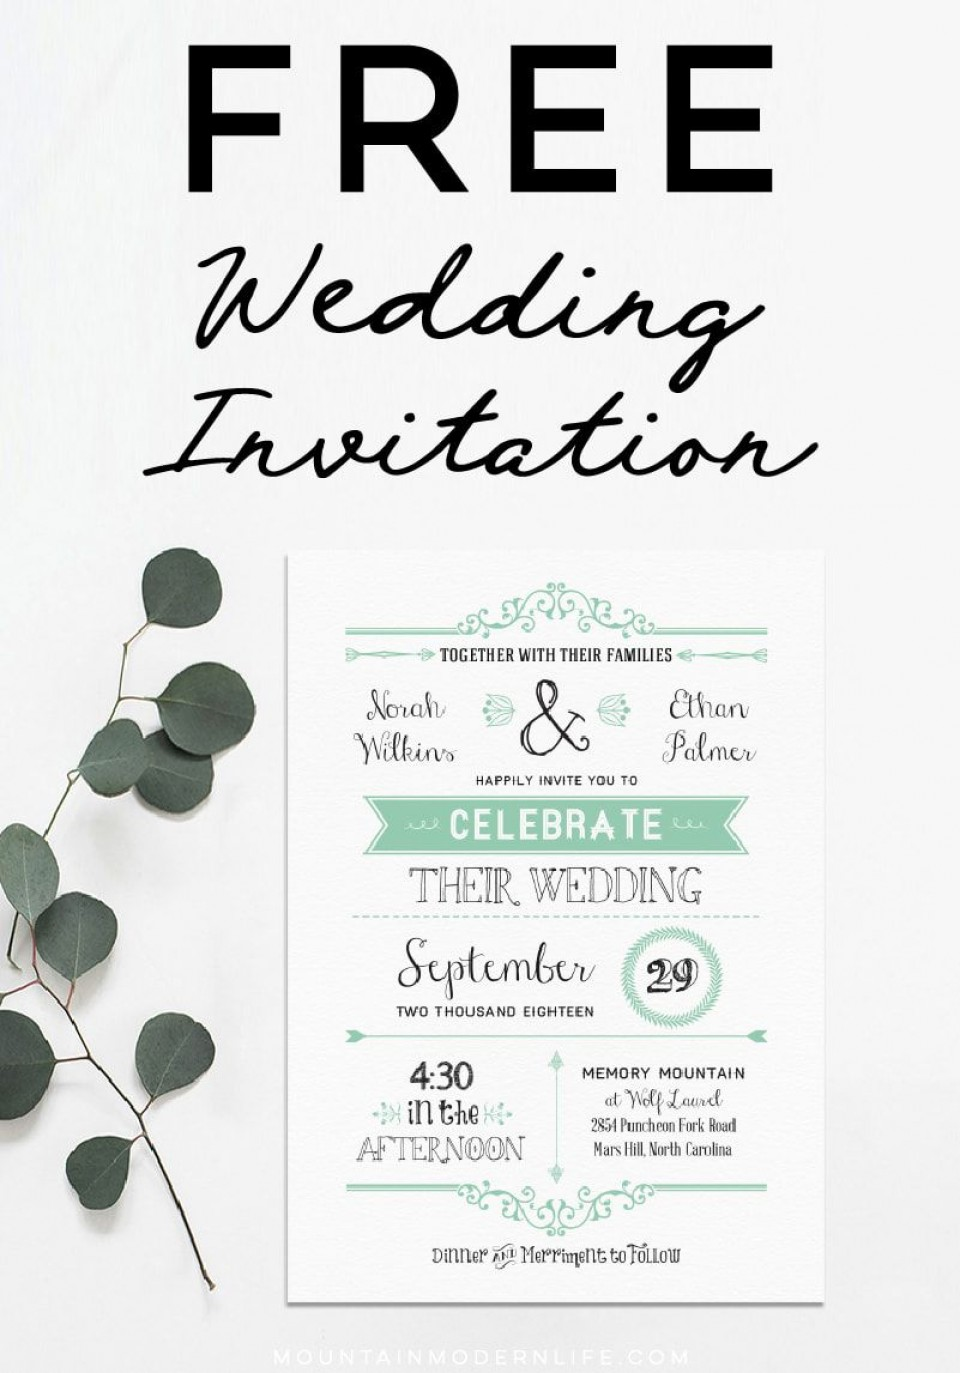 006 Staggering Celebration Of Life Invite Template Free Photo  Invitation Download960